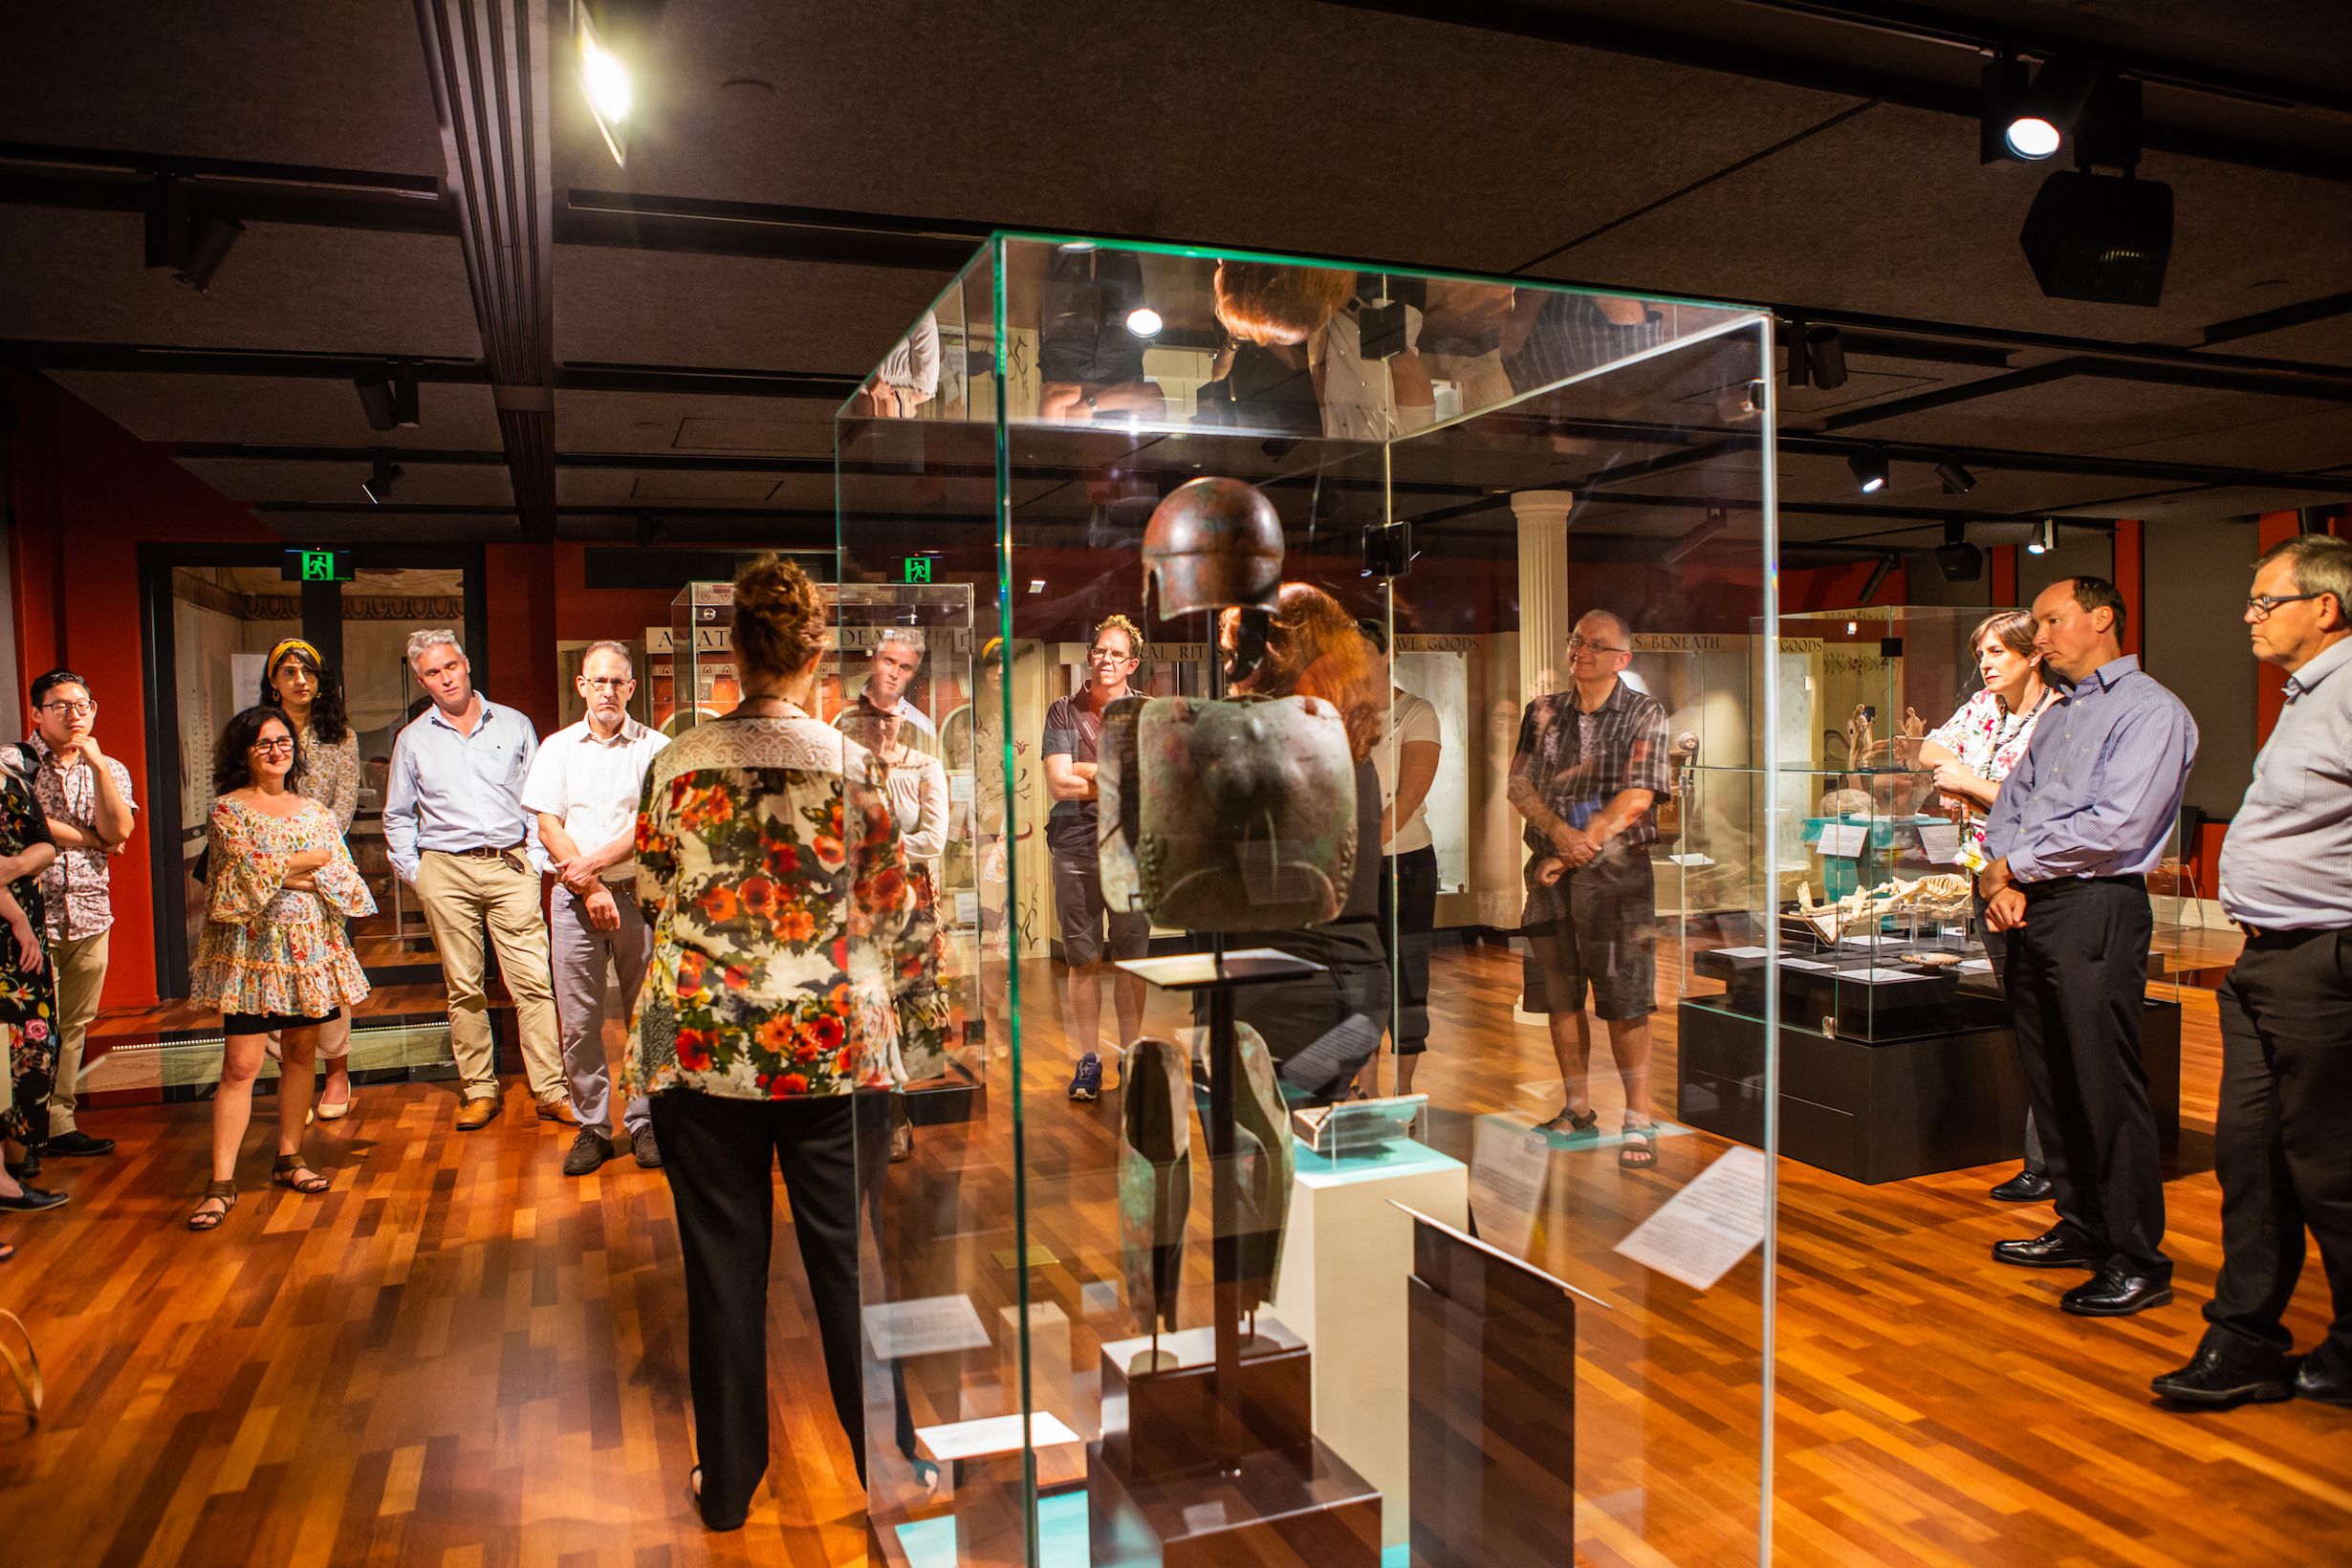 The  'Fantastic Feasts'  exhibition will run from 6 April 2019 to 23 February 2020 at the Teece Museum of Classical Antiquities, UC Arts city location, 3 Hereford Street (in the Arts Centre). It will explore feasting traditions in the ancient world, including the Roman Empire, and highlight the connections that were drawn between food and the gods in ancient times. For more information about the upcoming  'Fantastic Feasts'  exhibition,  click here .